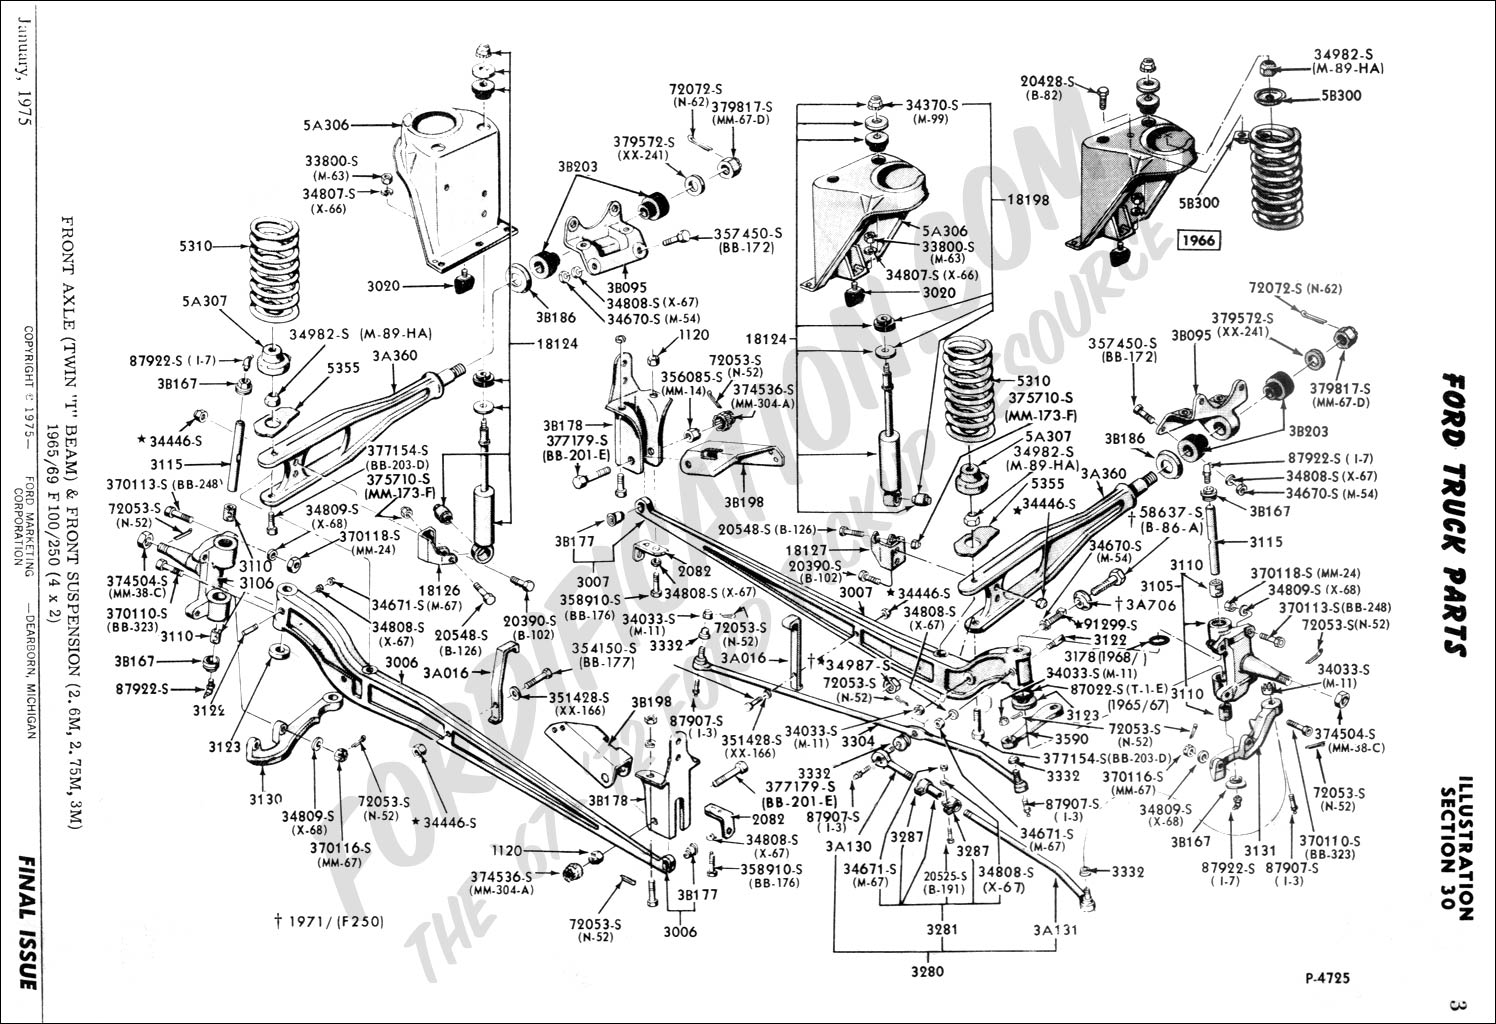 1061623 Bent I Beams On 70swb on Ford F 150 Exhaust System Diagram